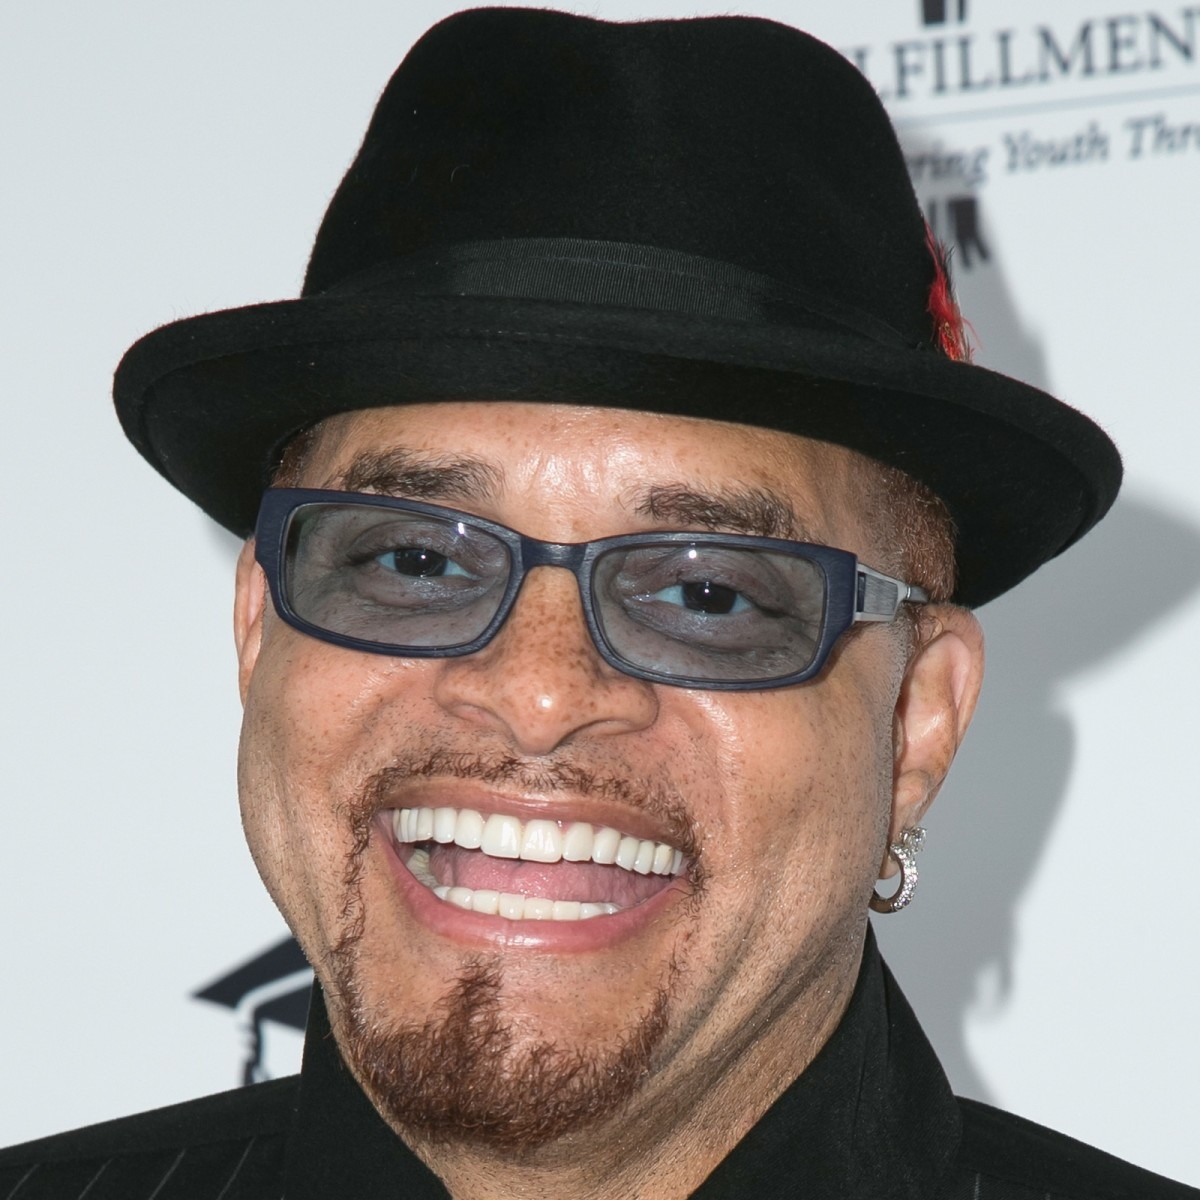 Sinbad photo via Getty Images